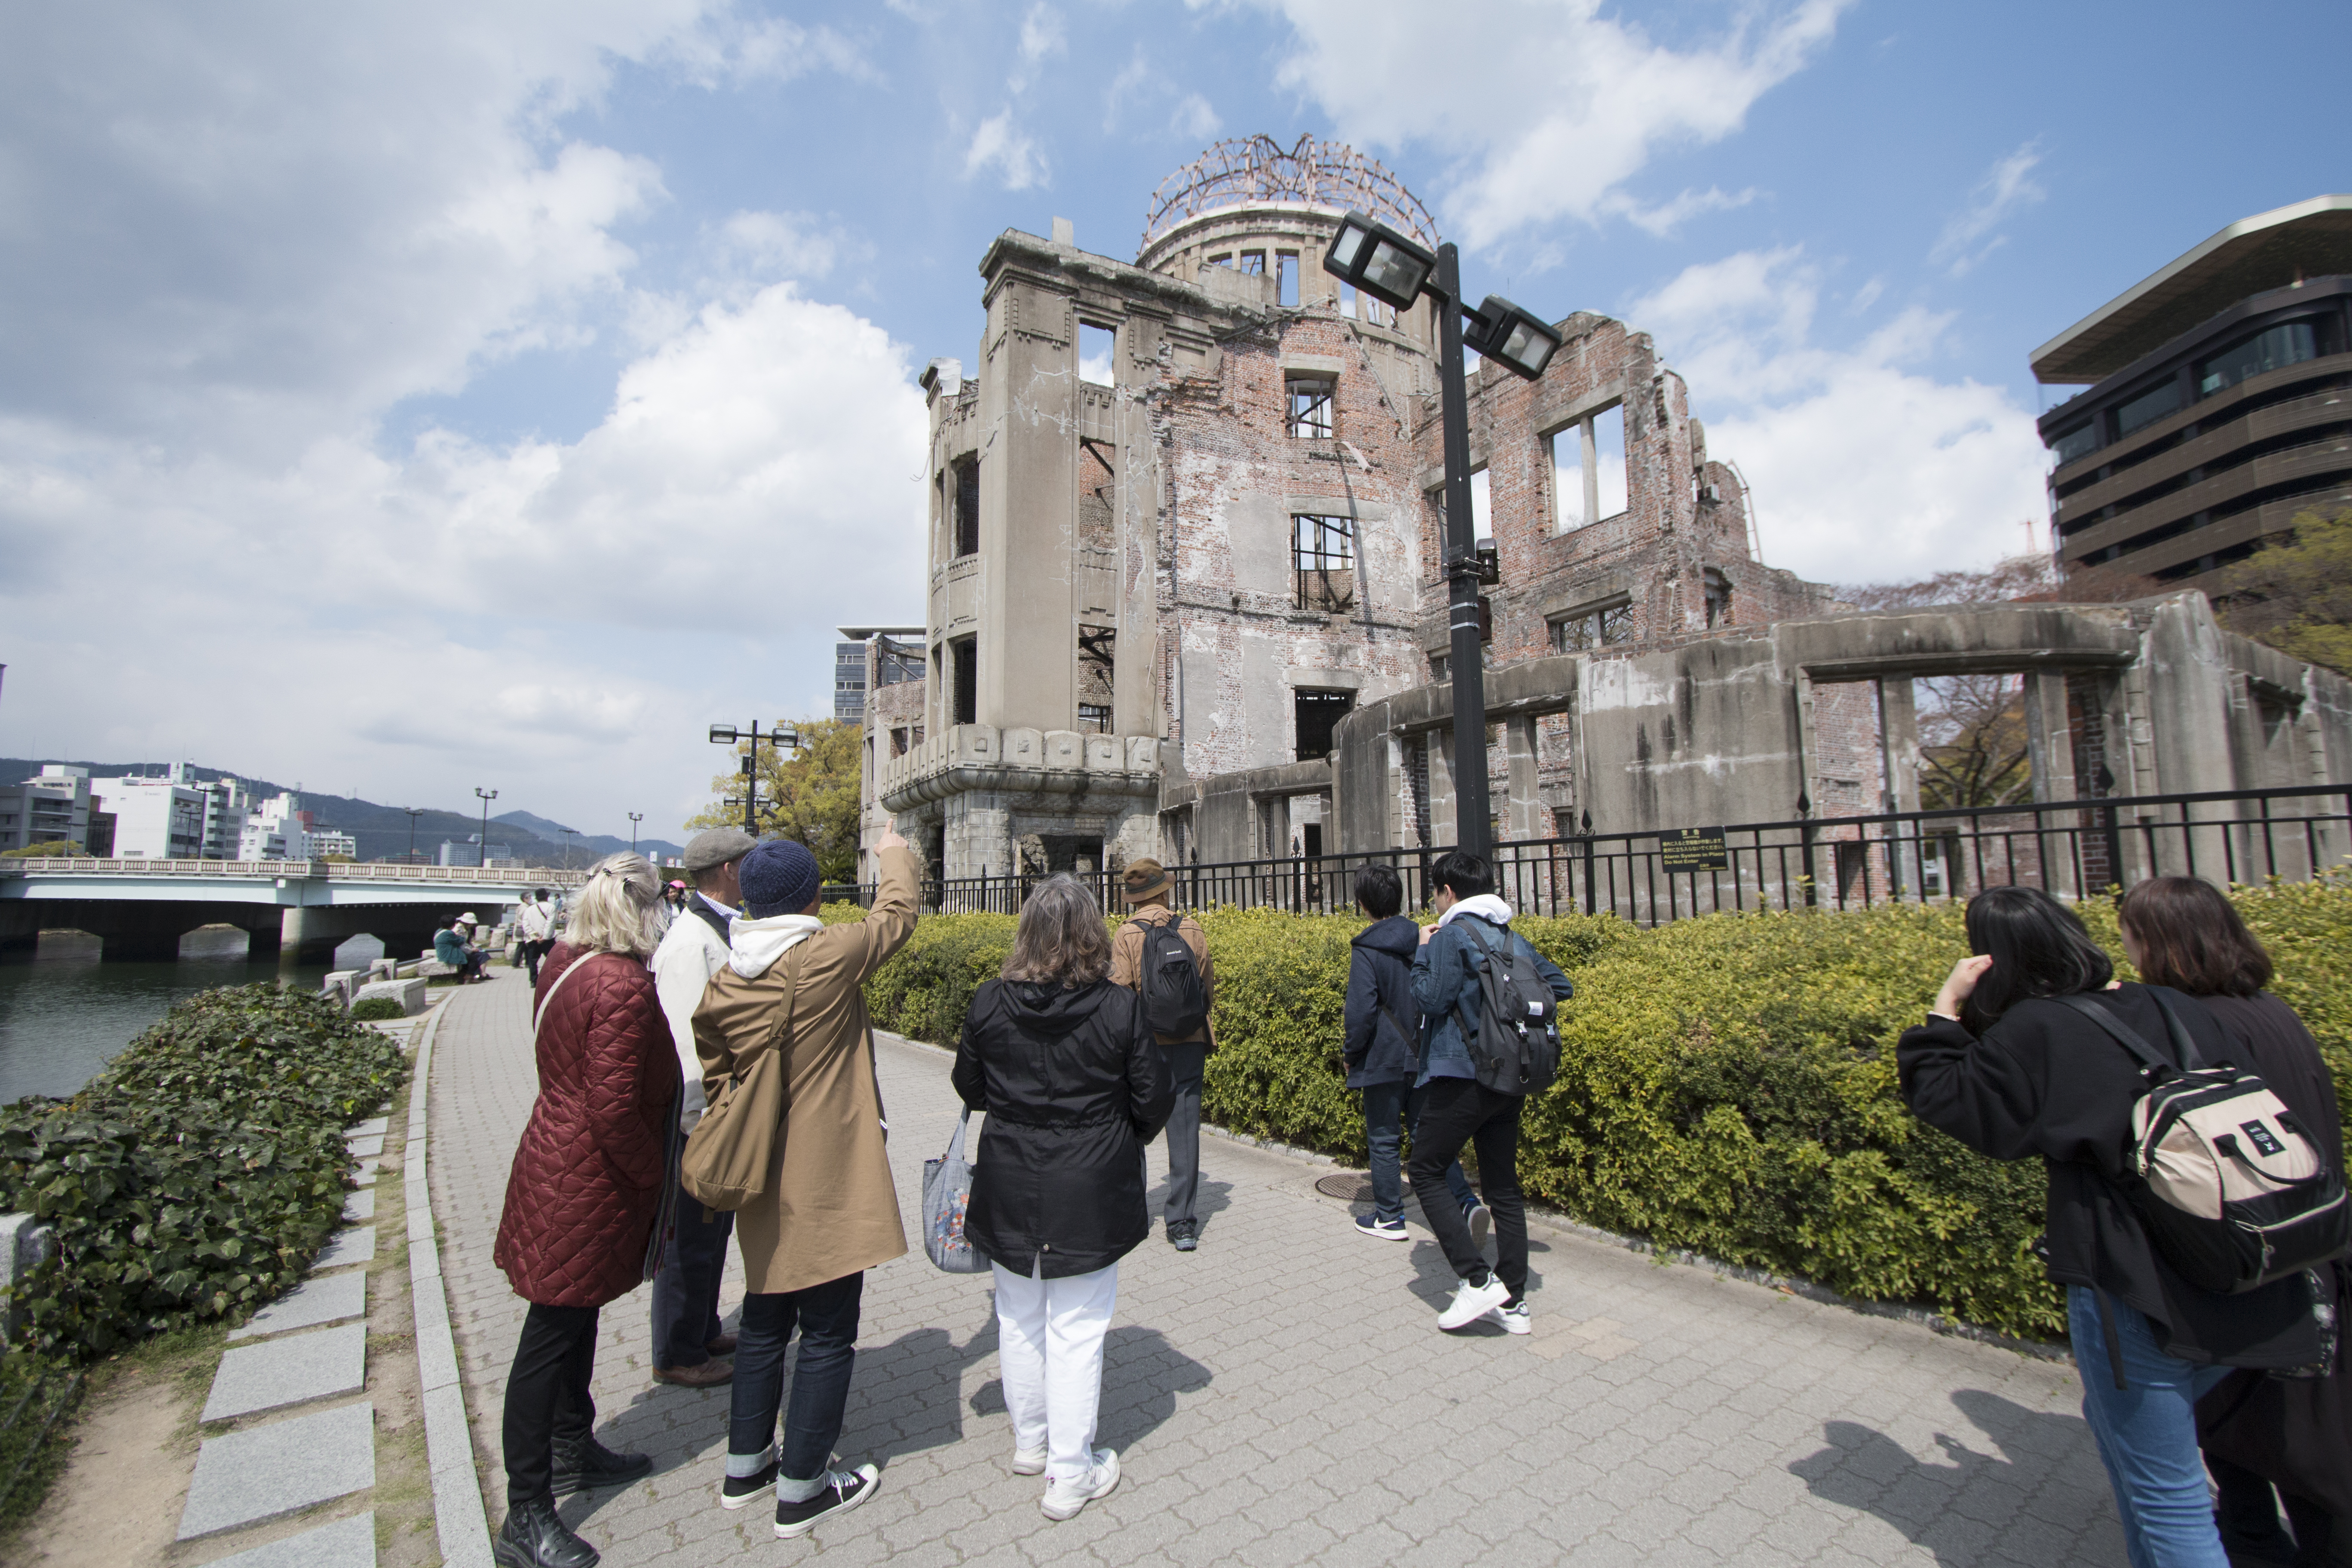 4-Hour Hiroshima Peace Walking Tour at World Heritage Sites